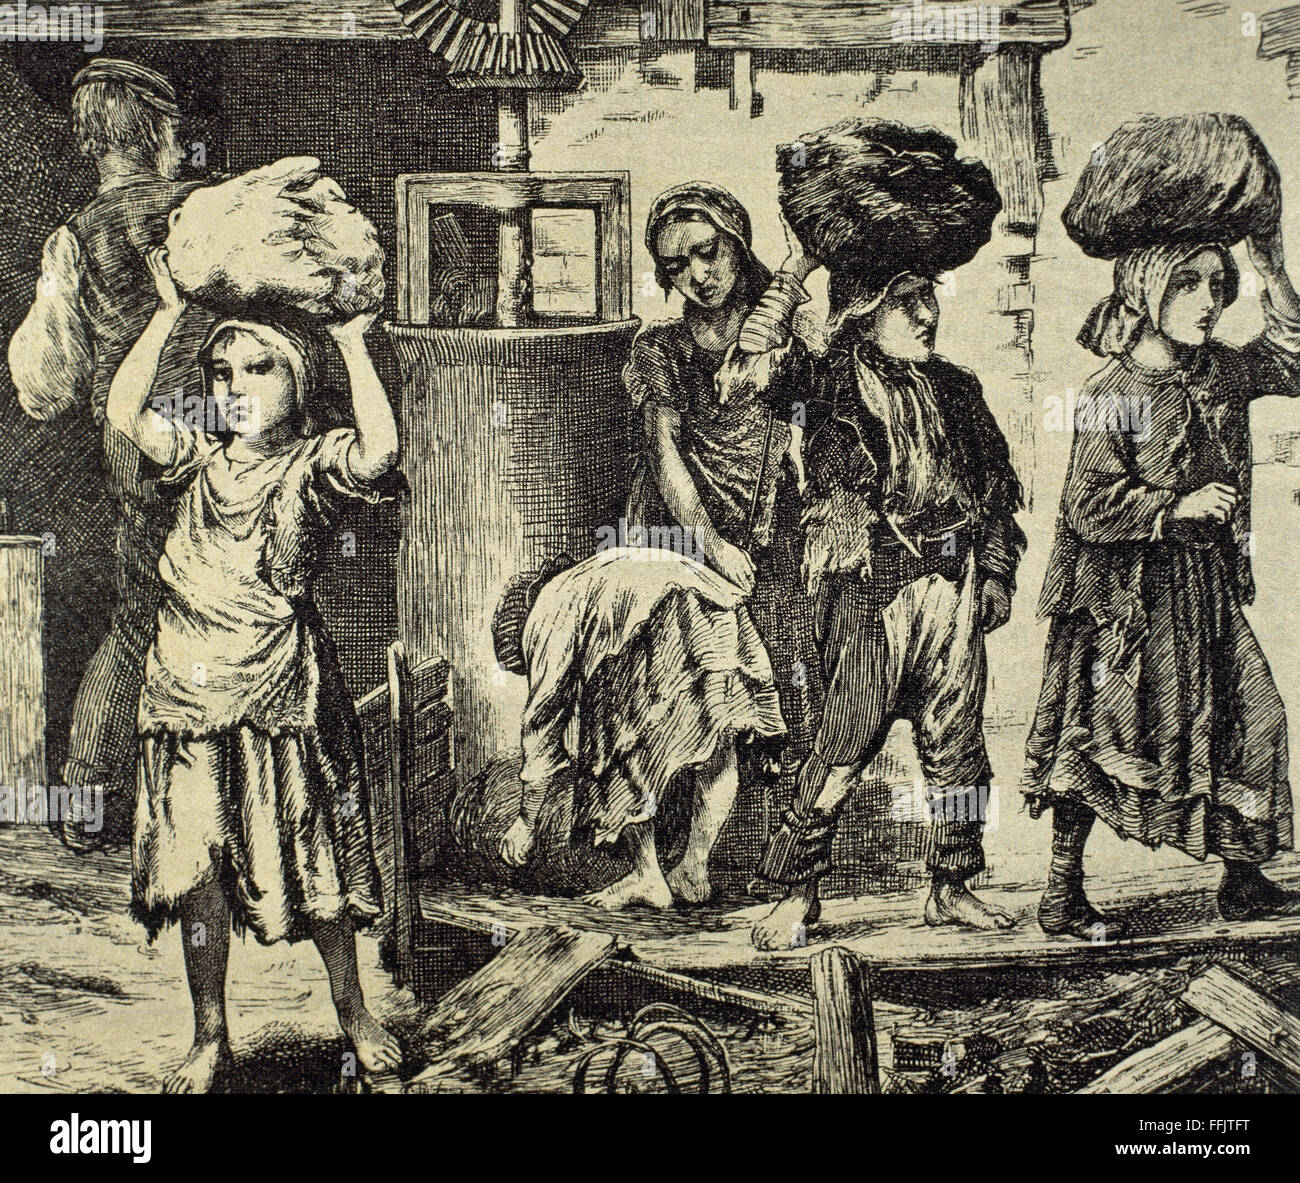 Children working in an industry. Early 19th century. Engraving. - Stock Image